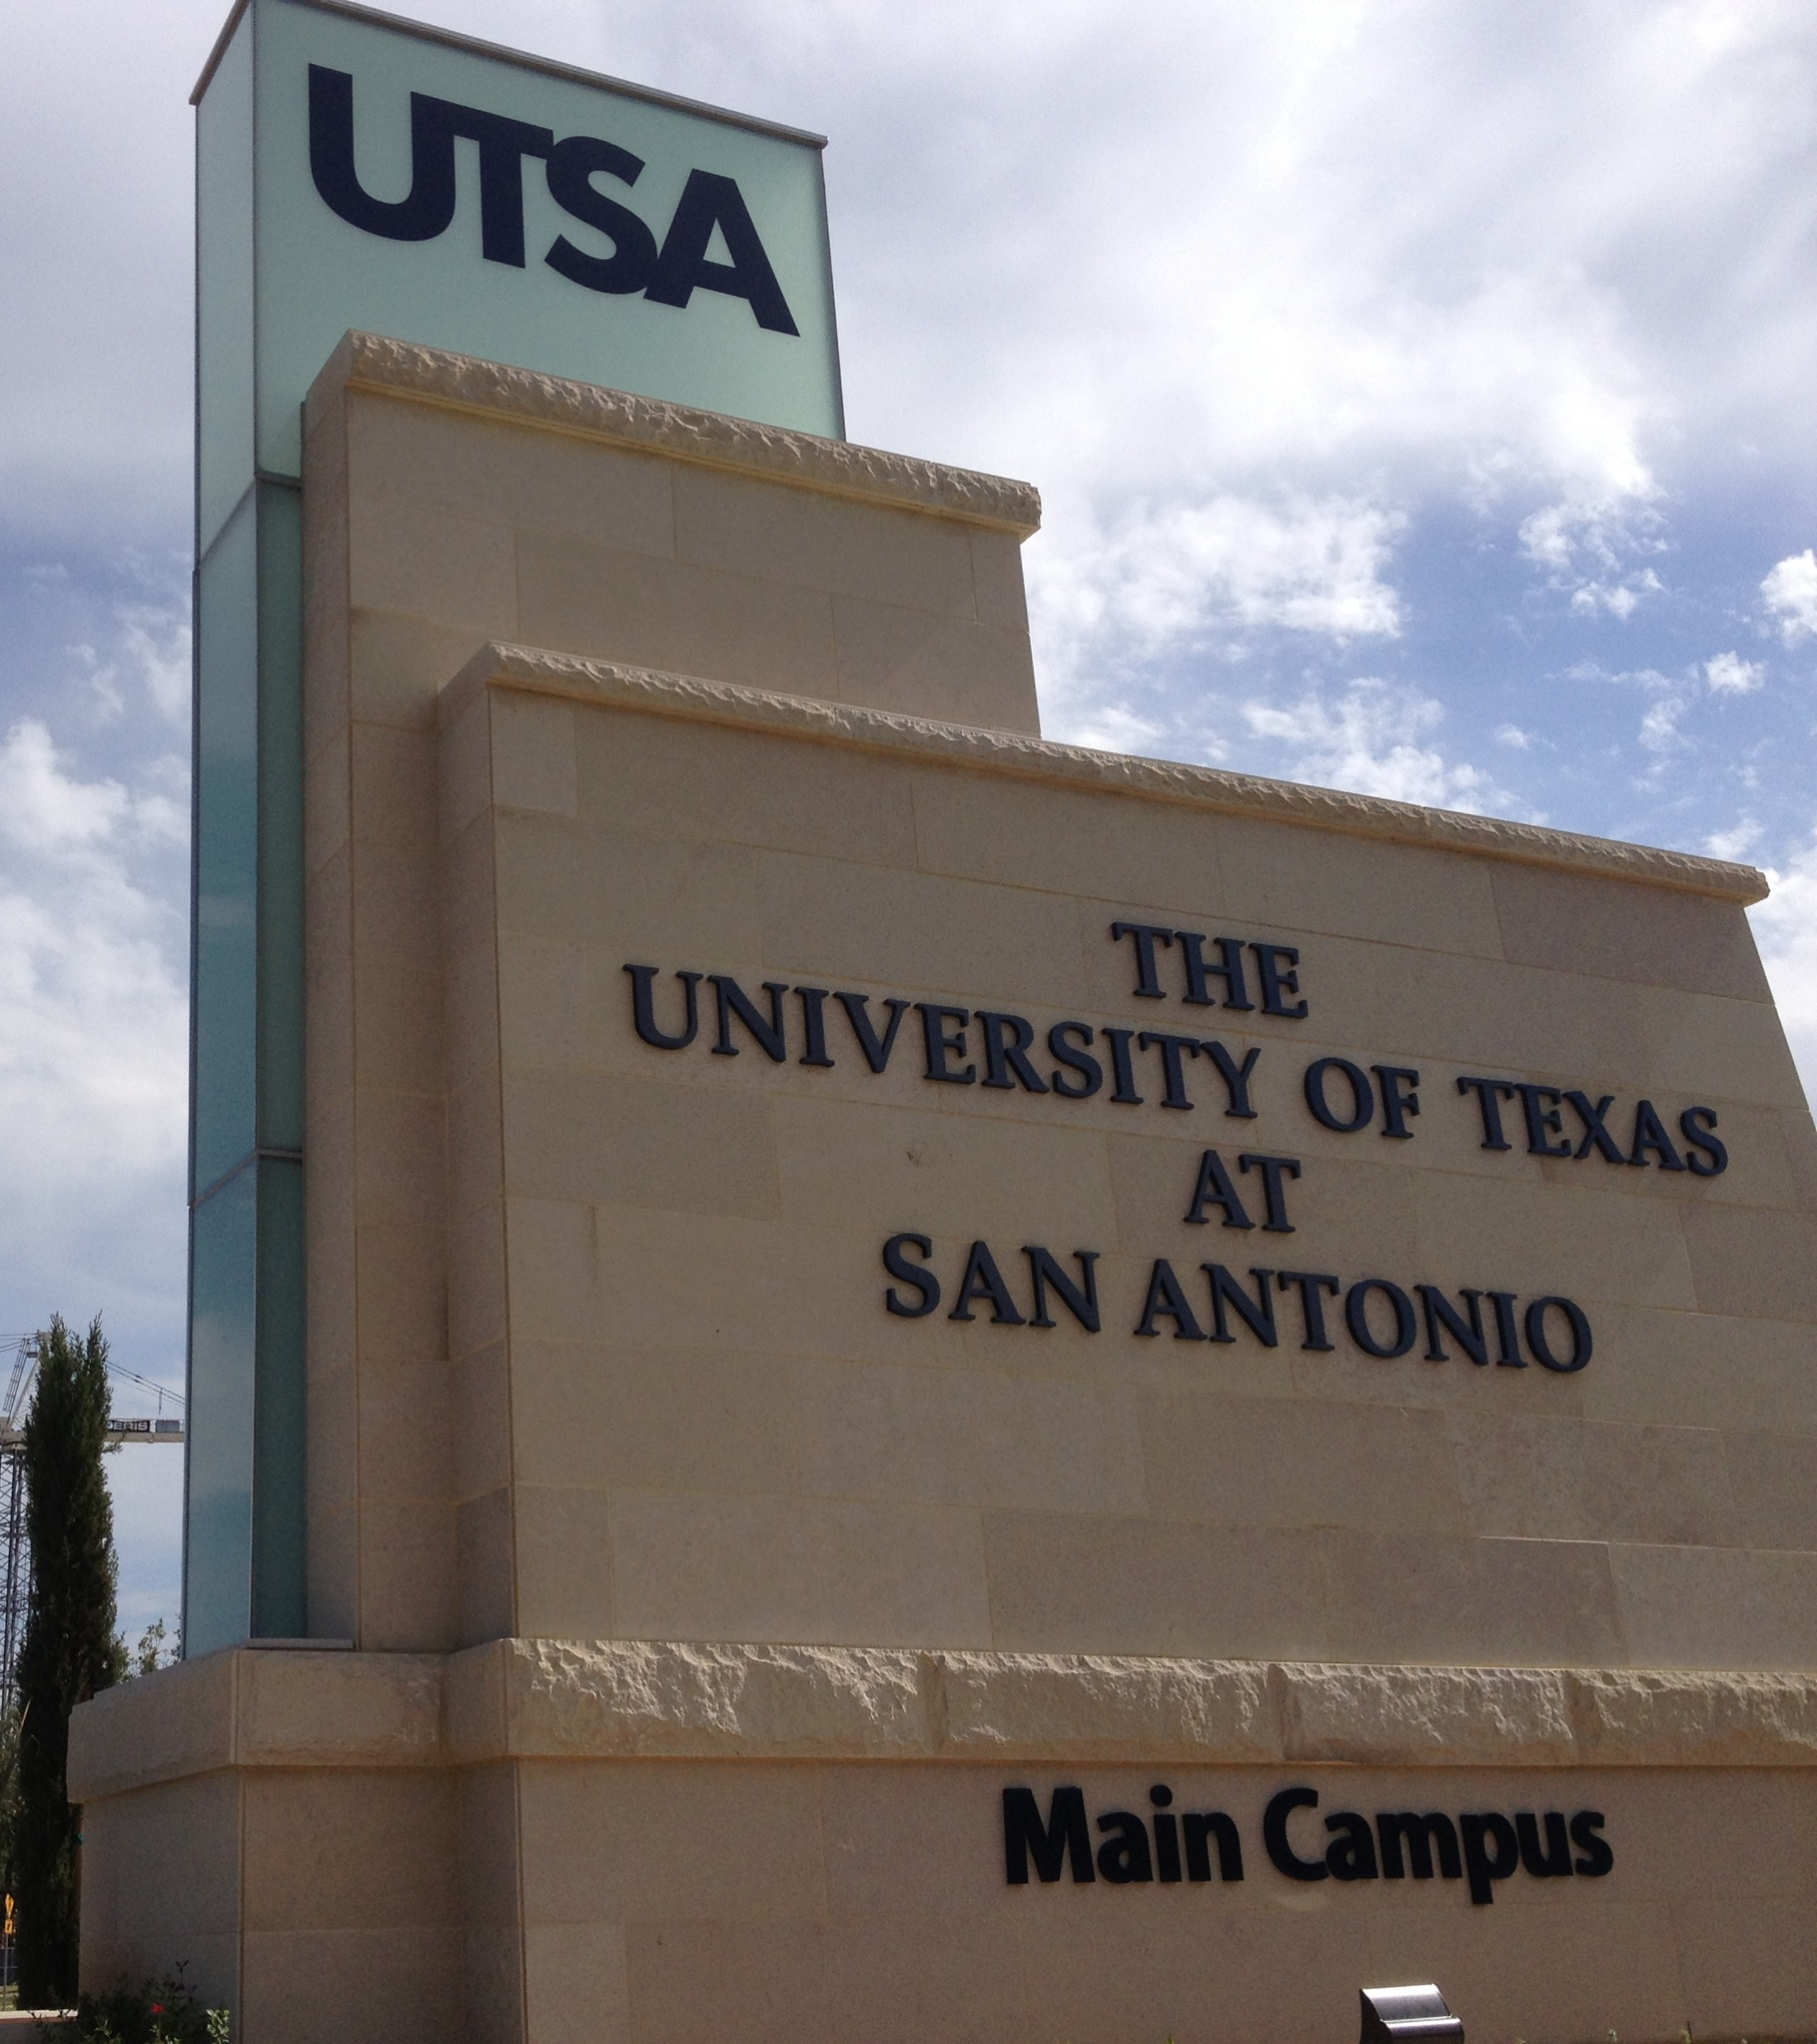 UTSA entrance sign